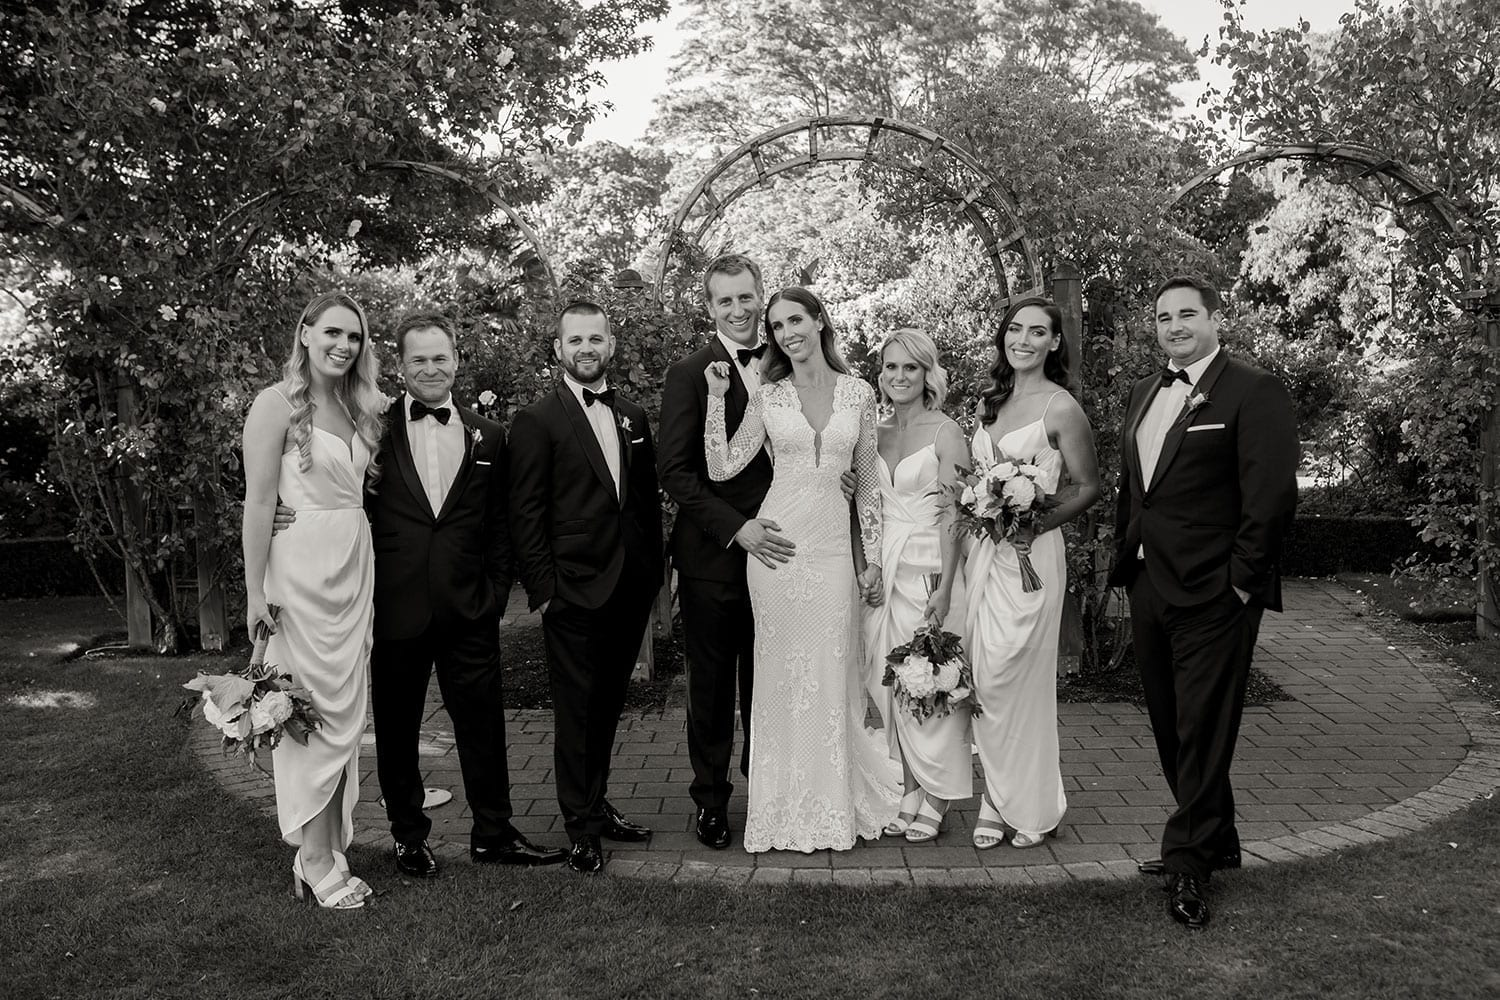 Vinka Design Features Real Weddings - Bride in bespoke fitted lace gown with deep v neck. With bridal party in garden